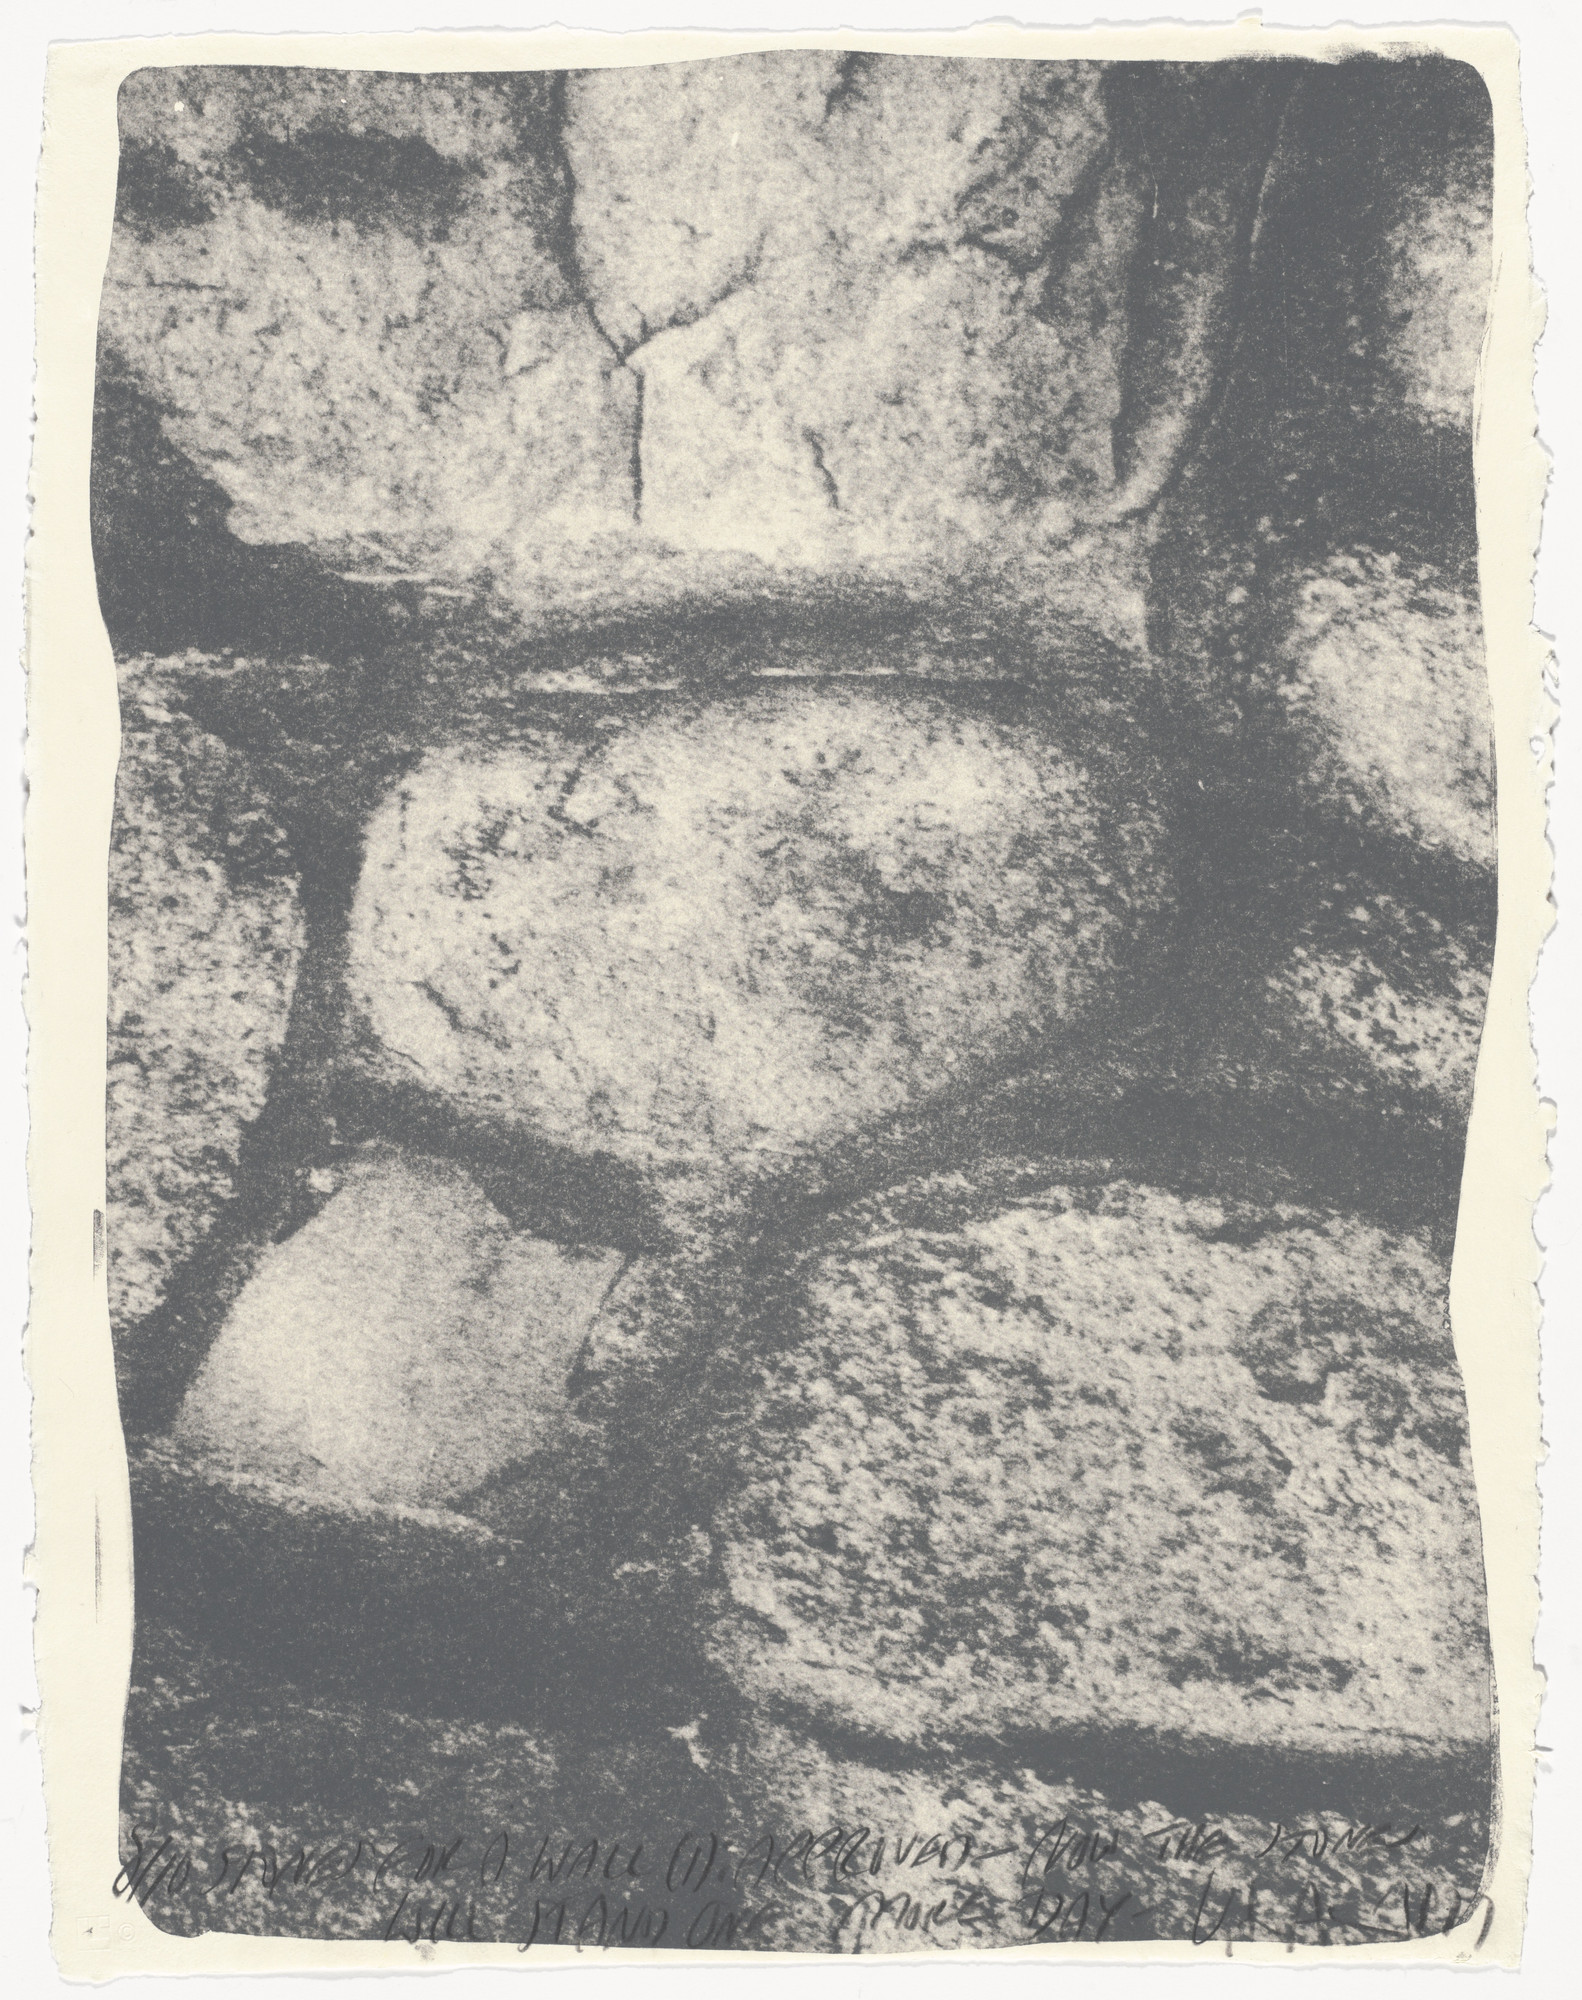 Vito Acconci. Stones for a Wall (1) from Stones for a Wall. 1977